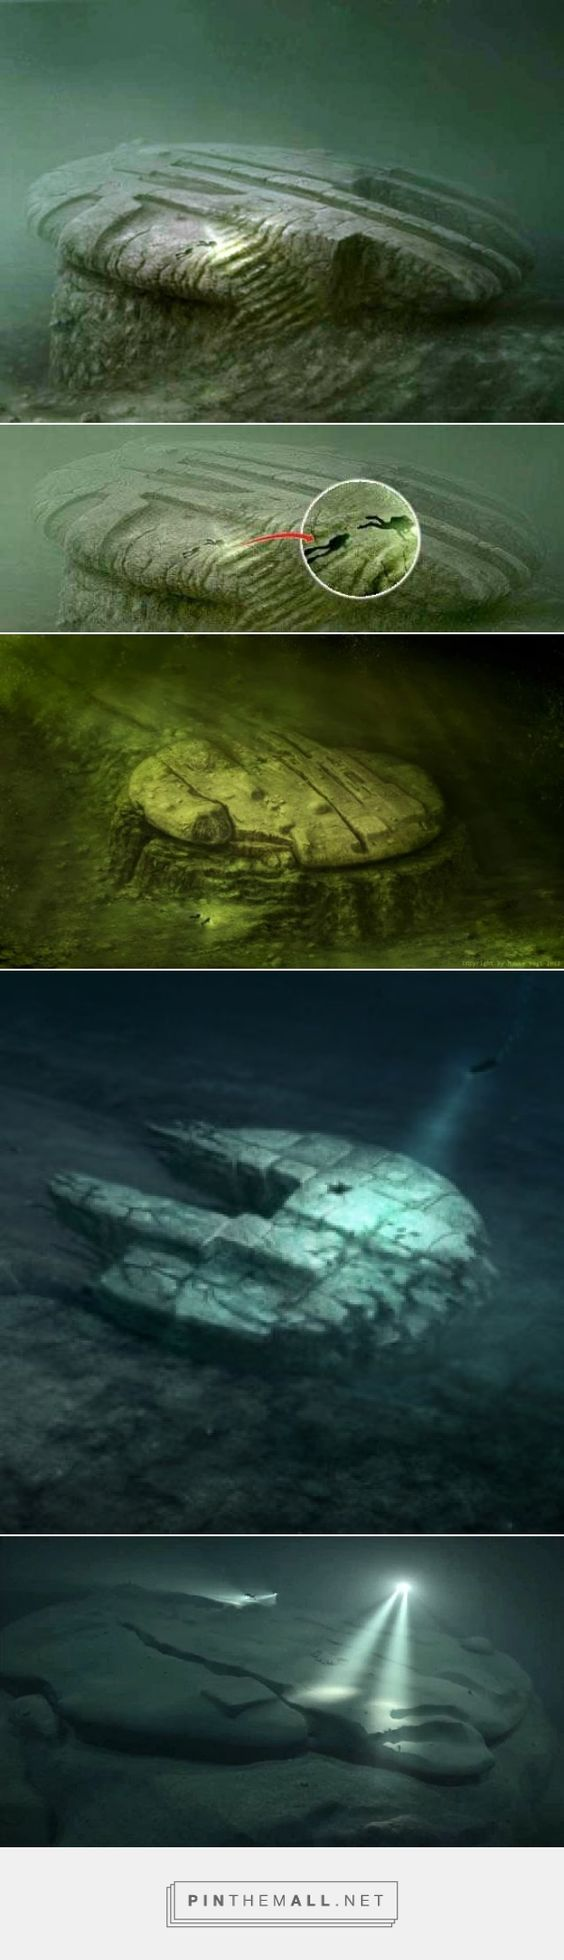 The Baltic Sea Anomaly - 2014, 14,000 Year Fossilized UFO/USO crash site, Shag Harbour Incident, Stunning Discoveries | Beyond Science